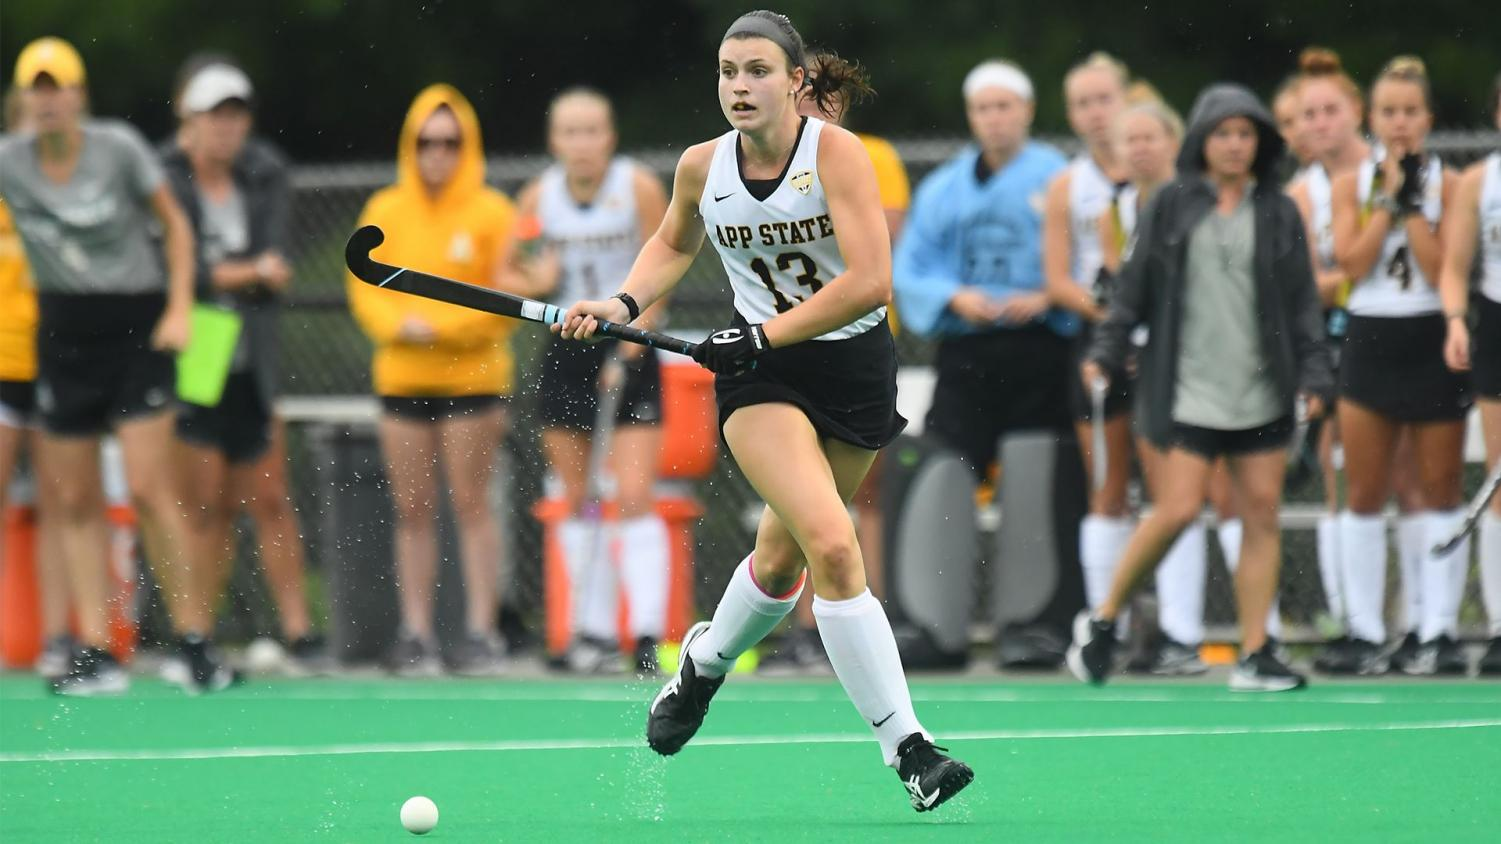 Junior midfielder/defender Meghan Smart has scored three goals in the first two game of the Mountaineers' season. App State sits at 2-0 after wins over Towson and Georgetown.  // Photo courtesy of App State Athletics, Tim Cowie Photography